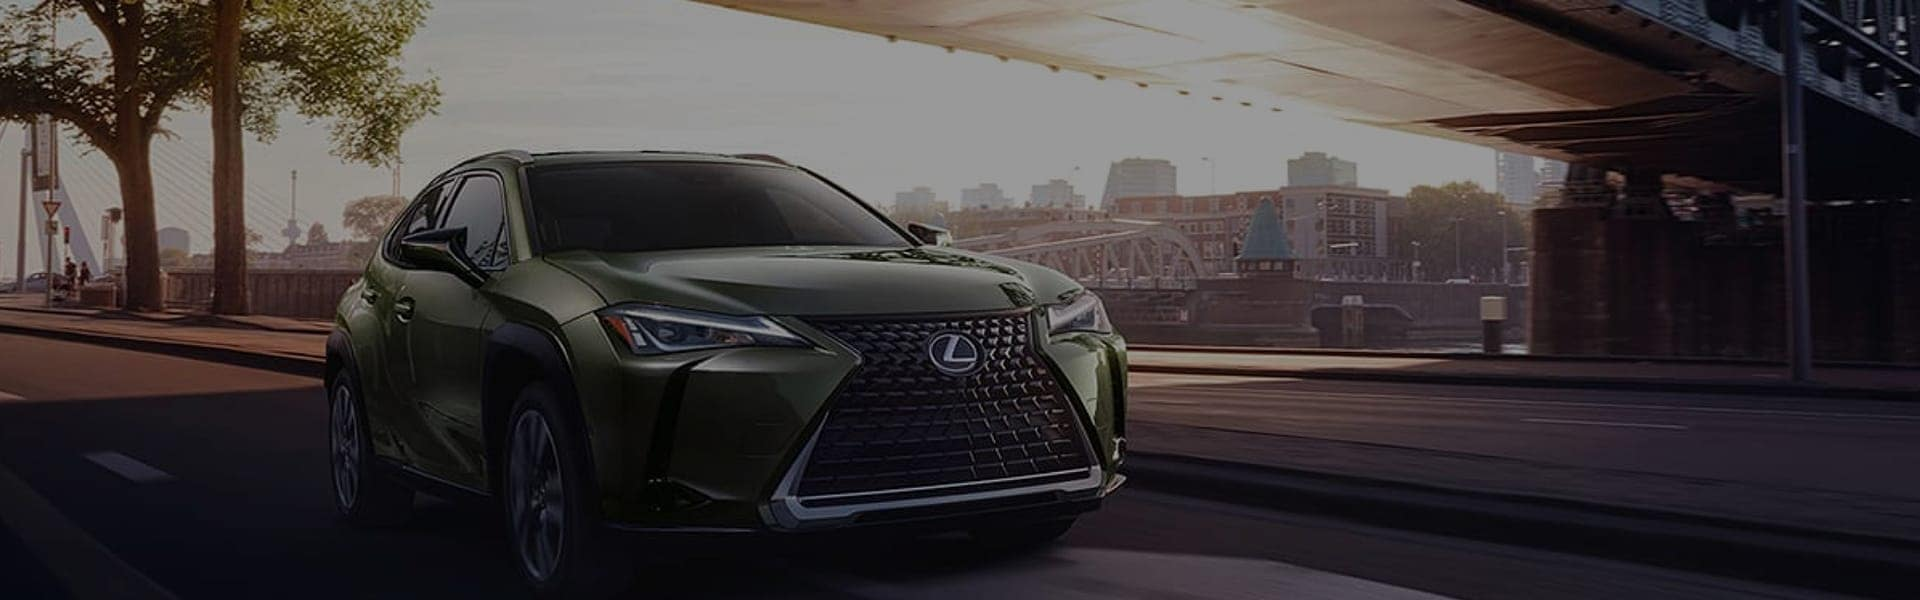 Welcome to Thompson Lexus Willow Grove